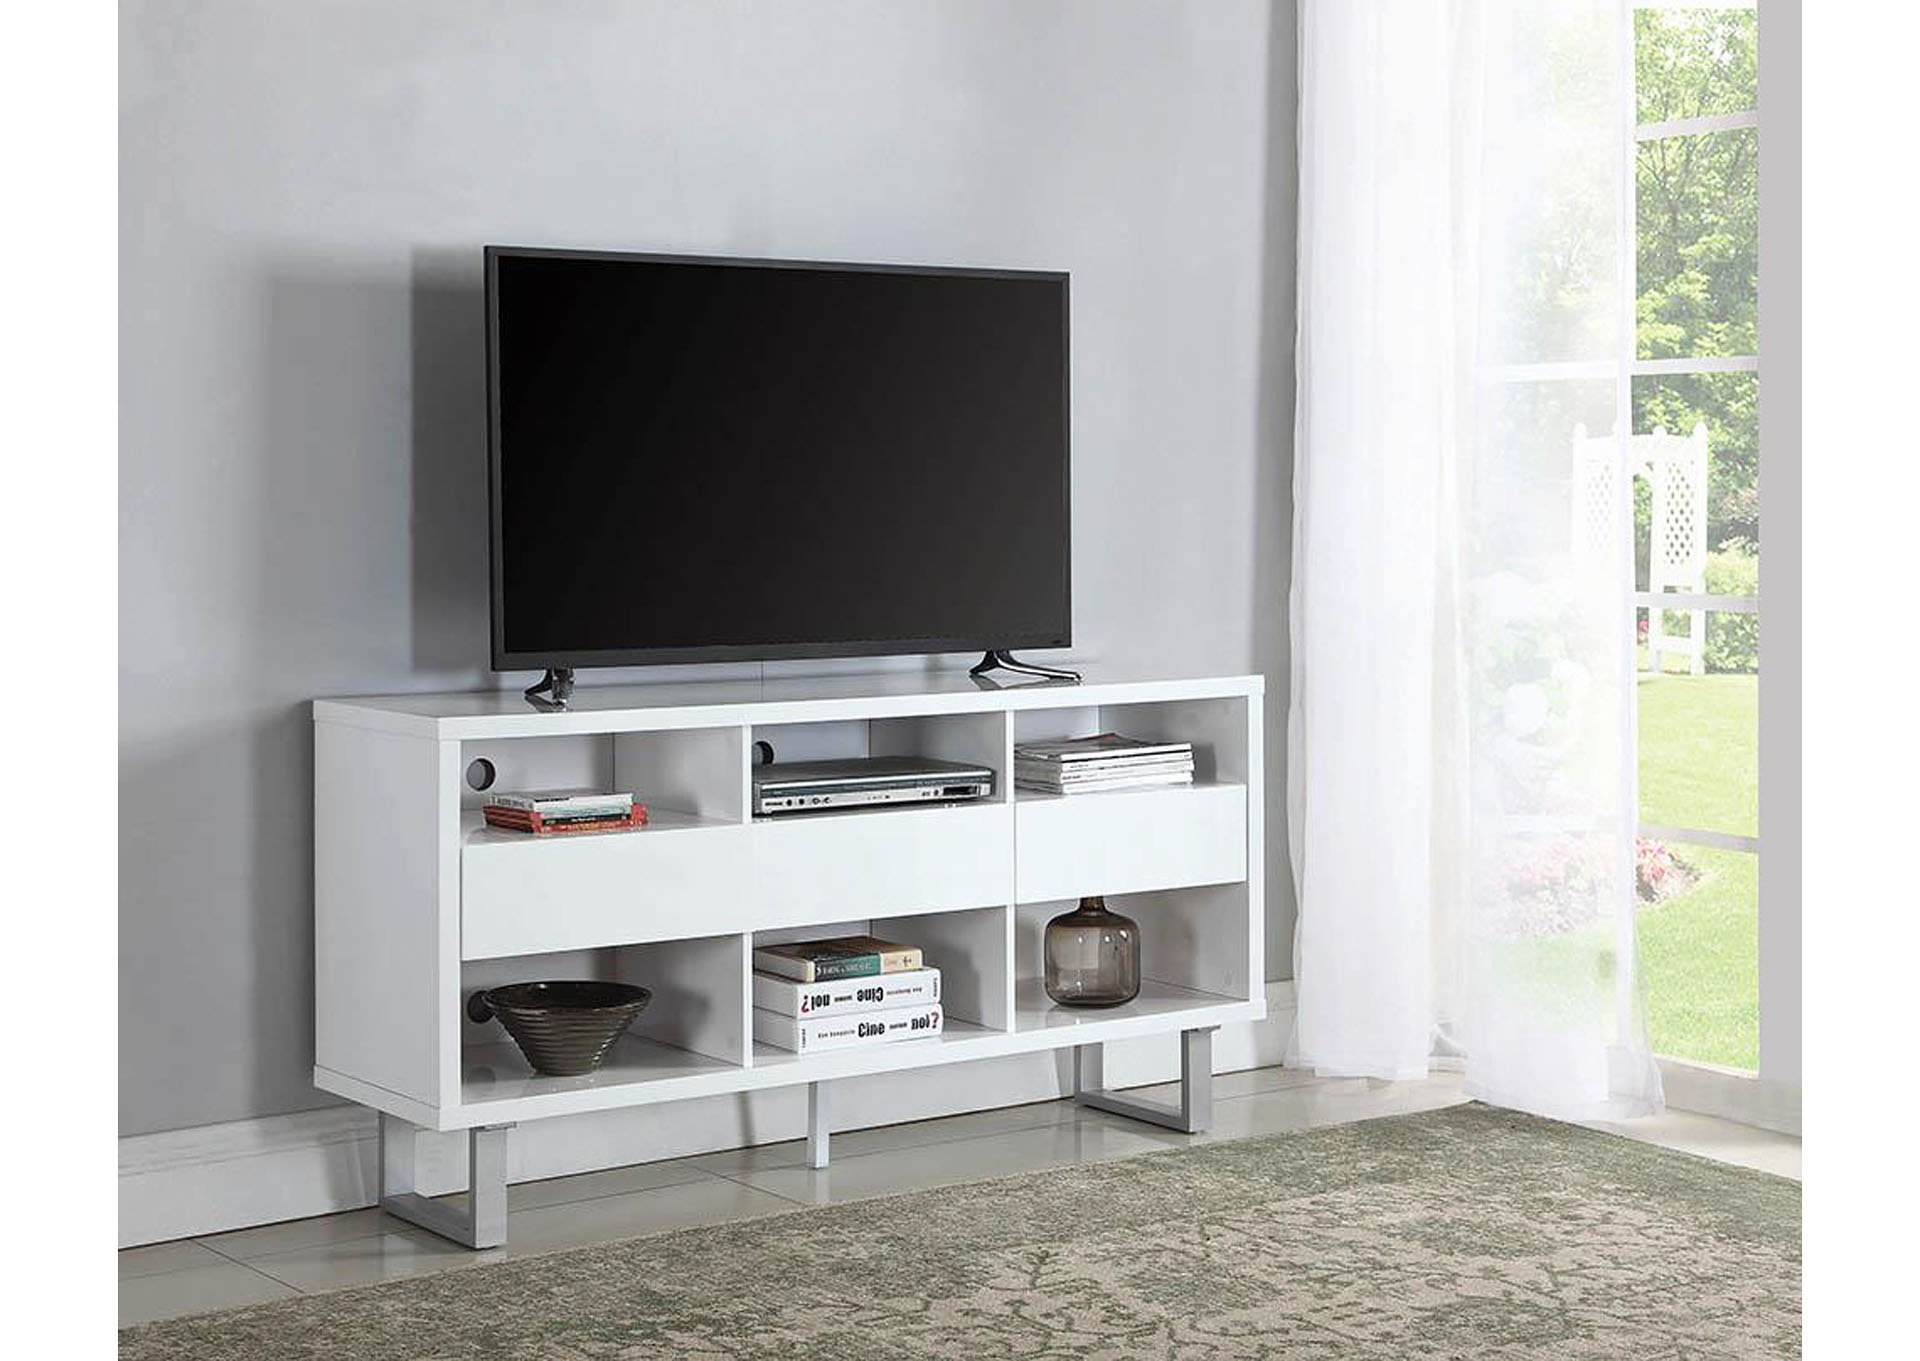 D N Furniture Scranton Pa High Glossy White Tv Stand